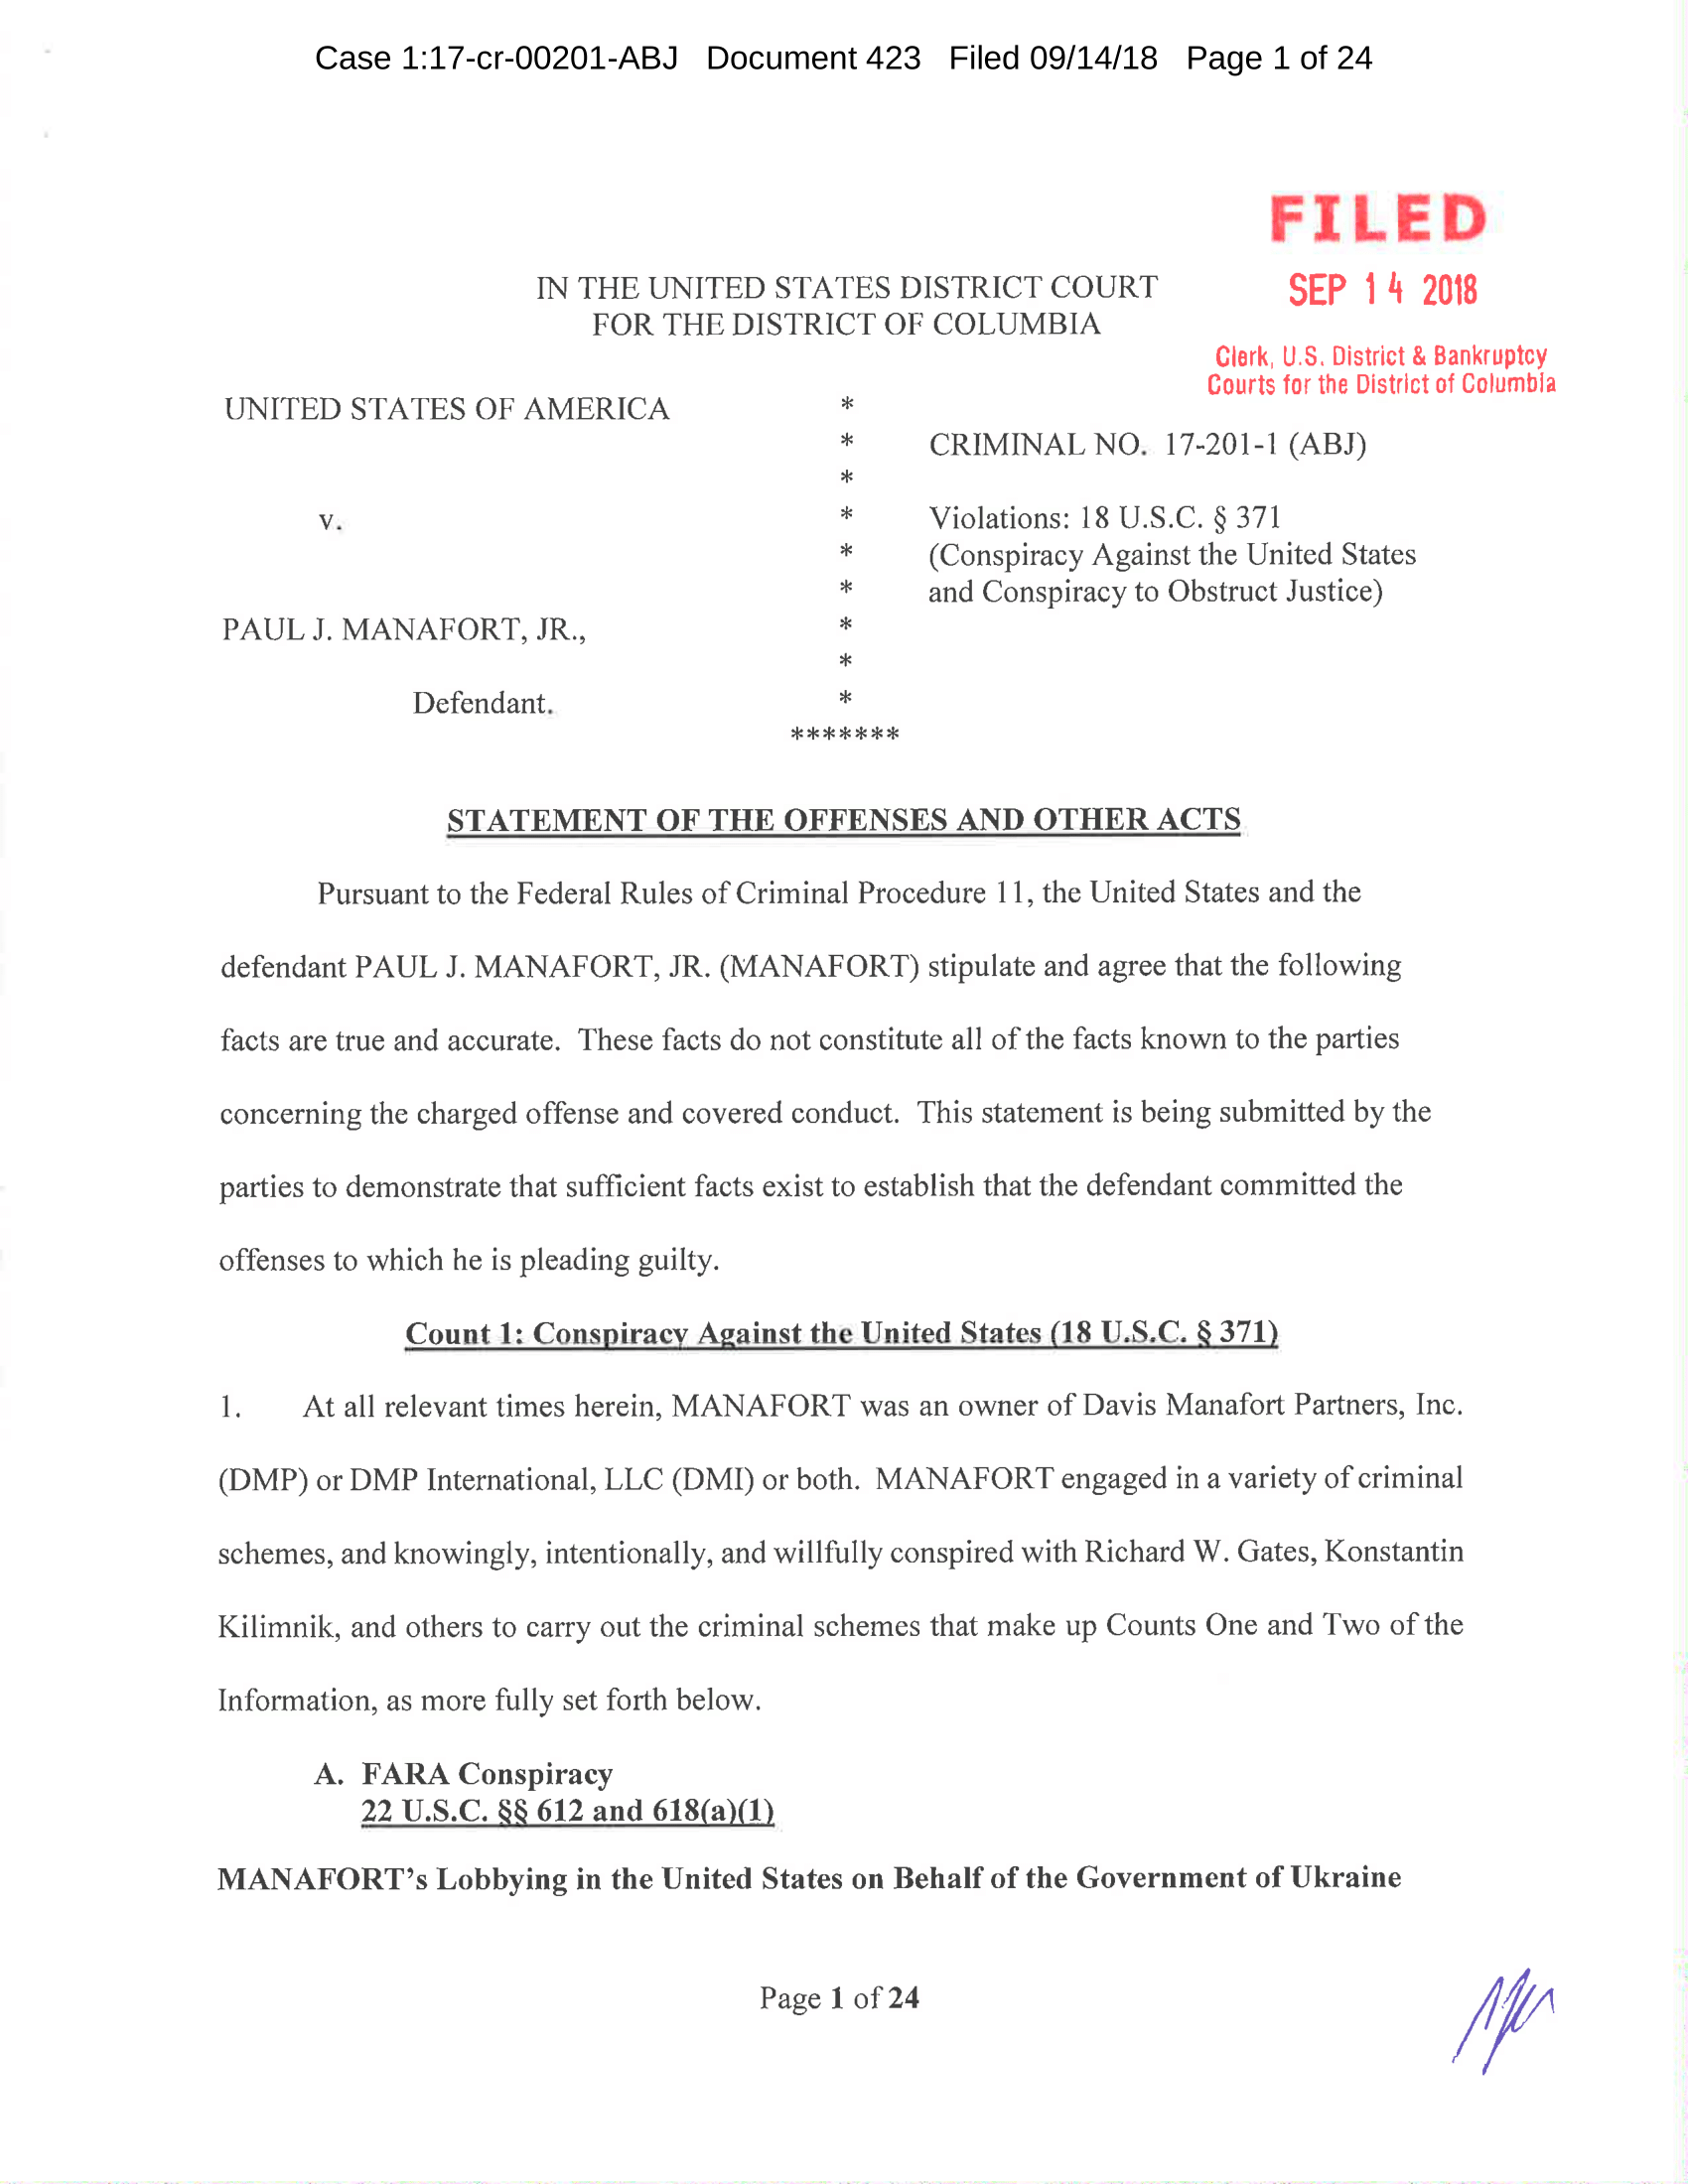 Paul Manafort Statement of the Offense